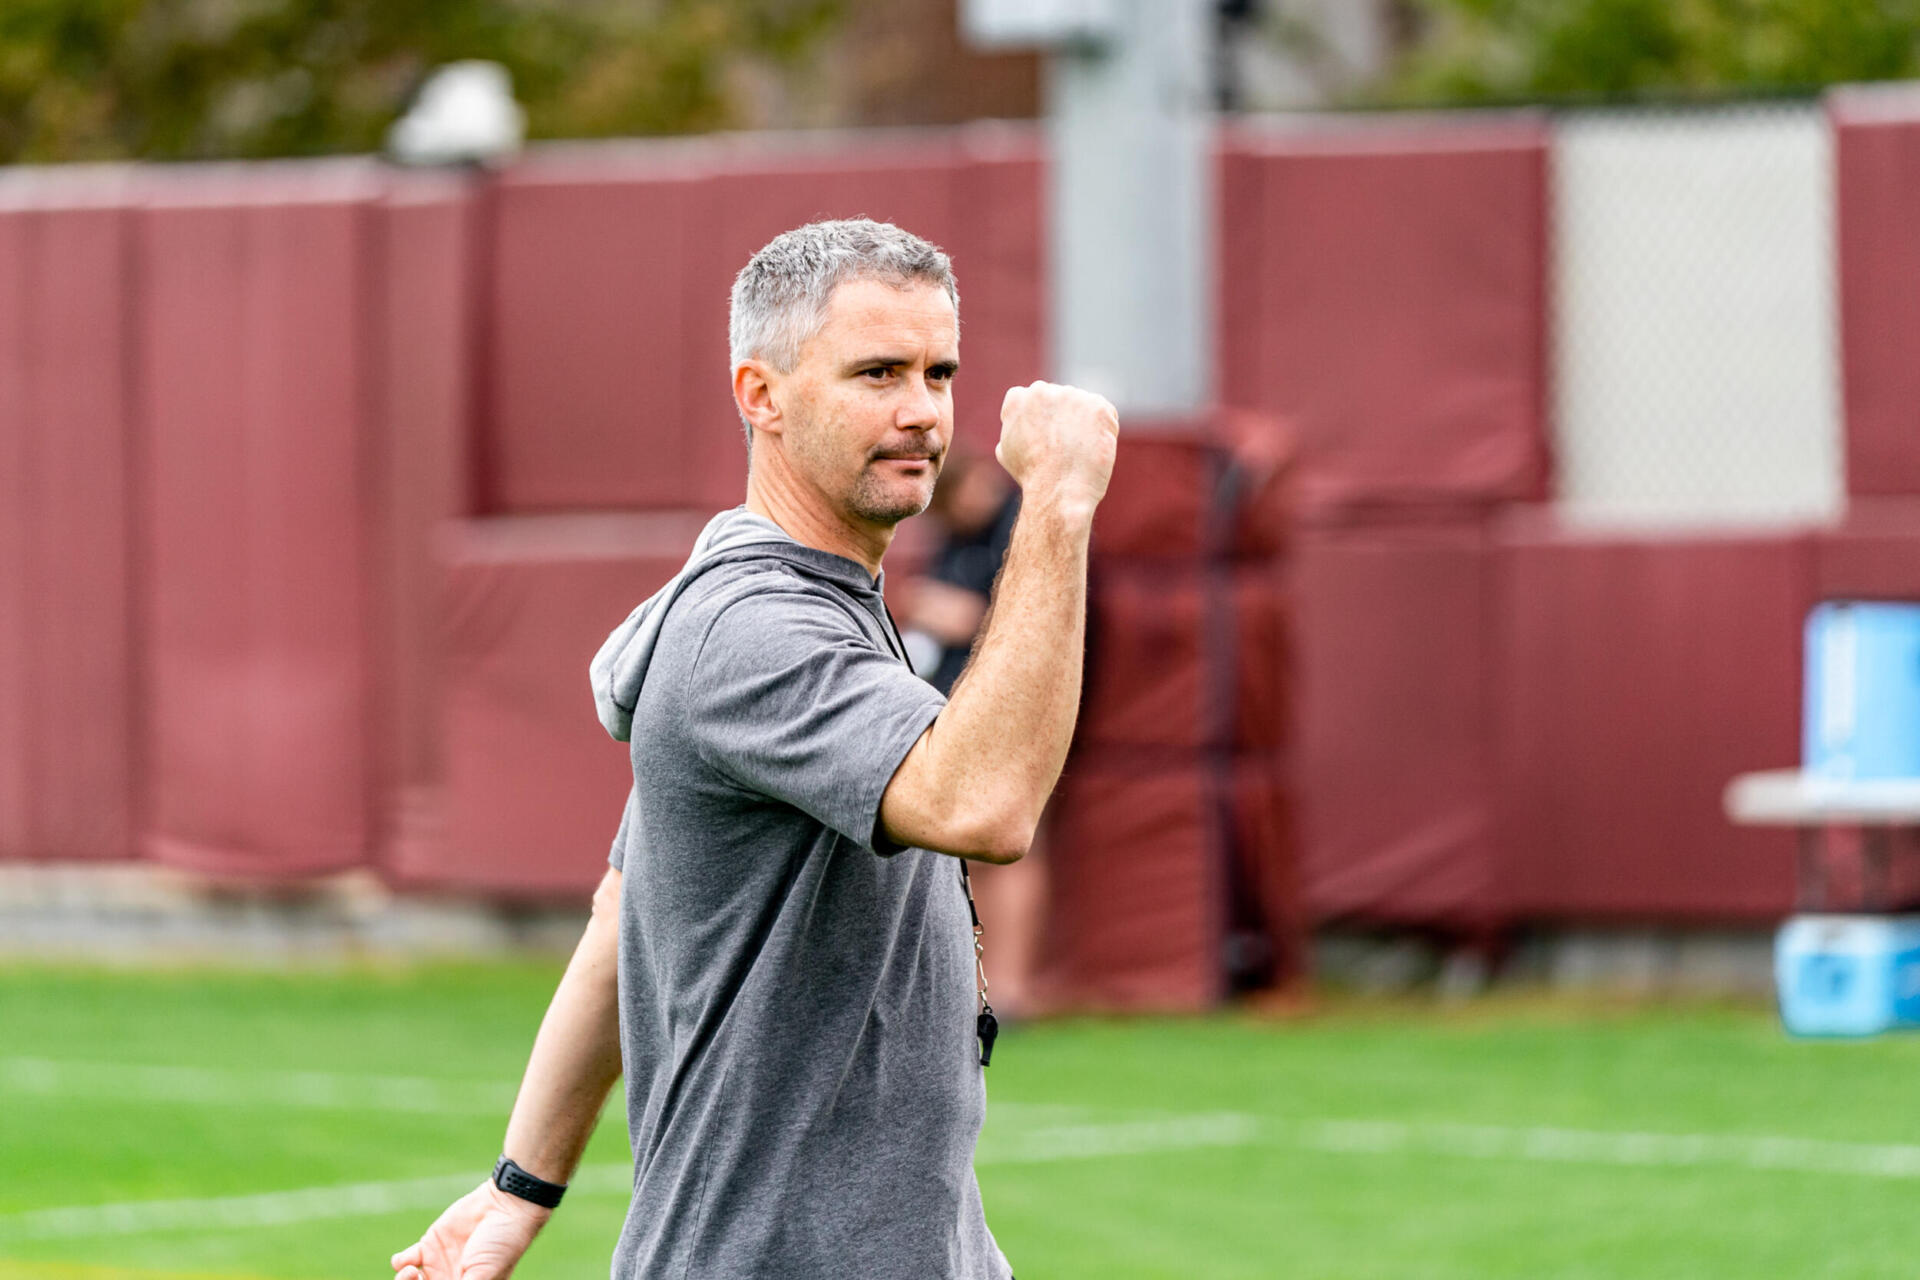 Norvell, Staff Press On In New Recruiting World